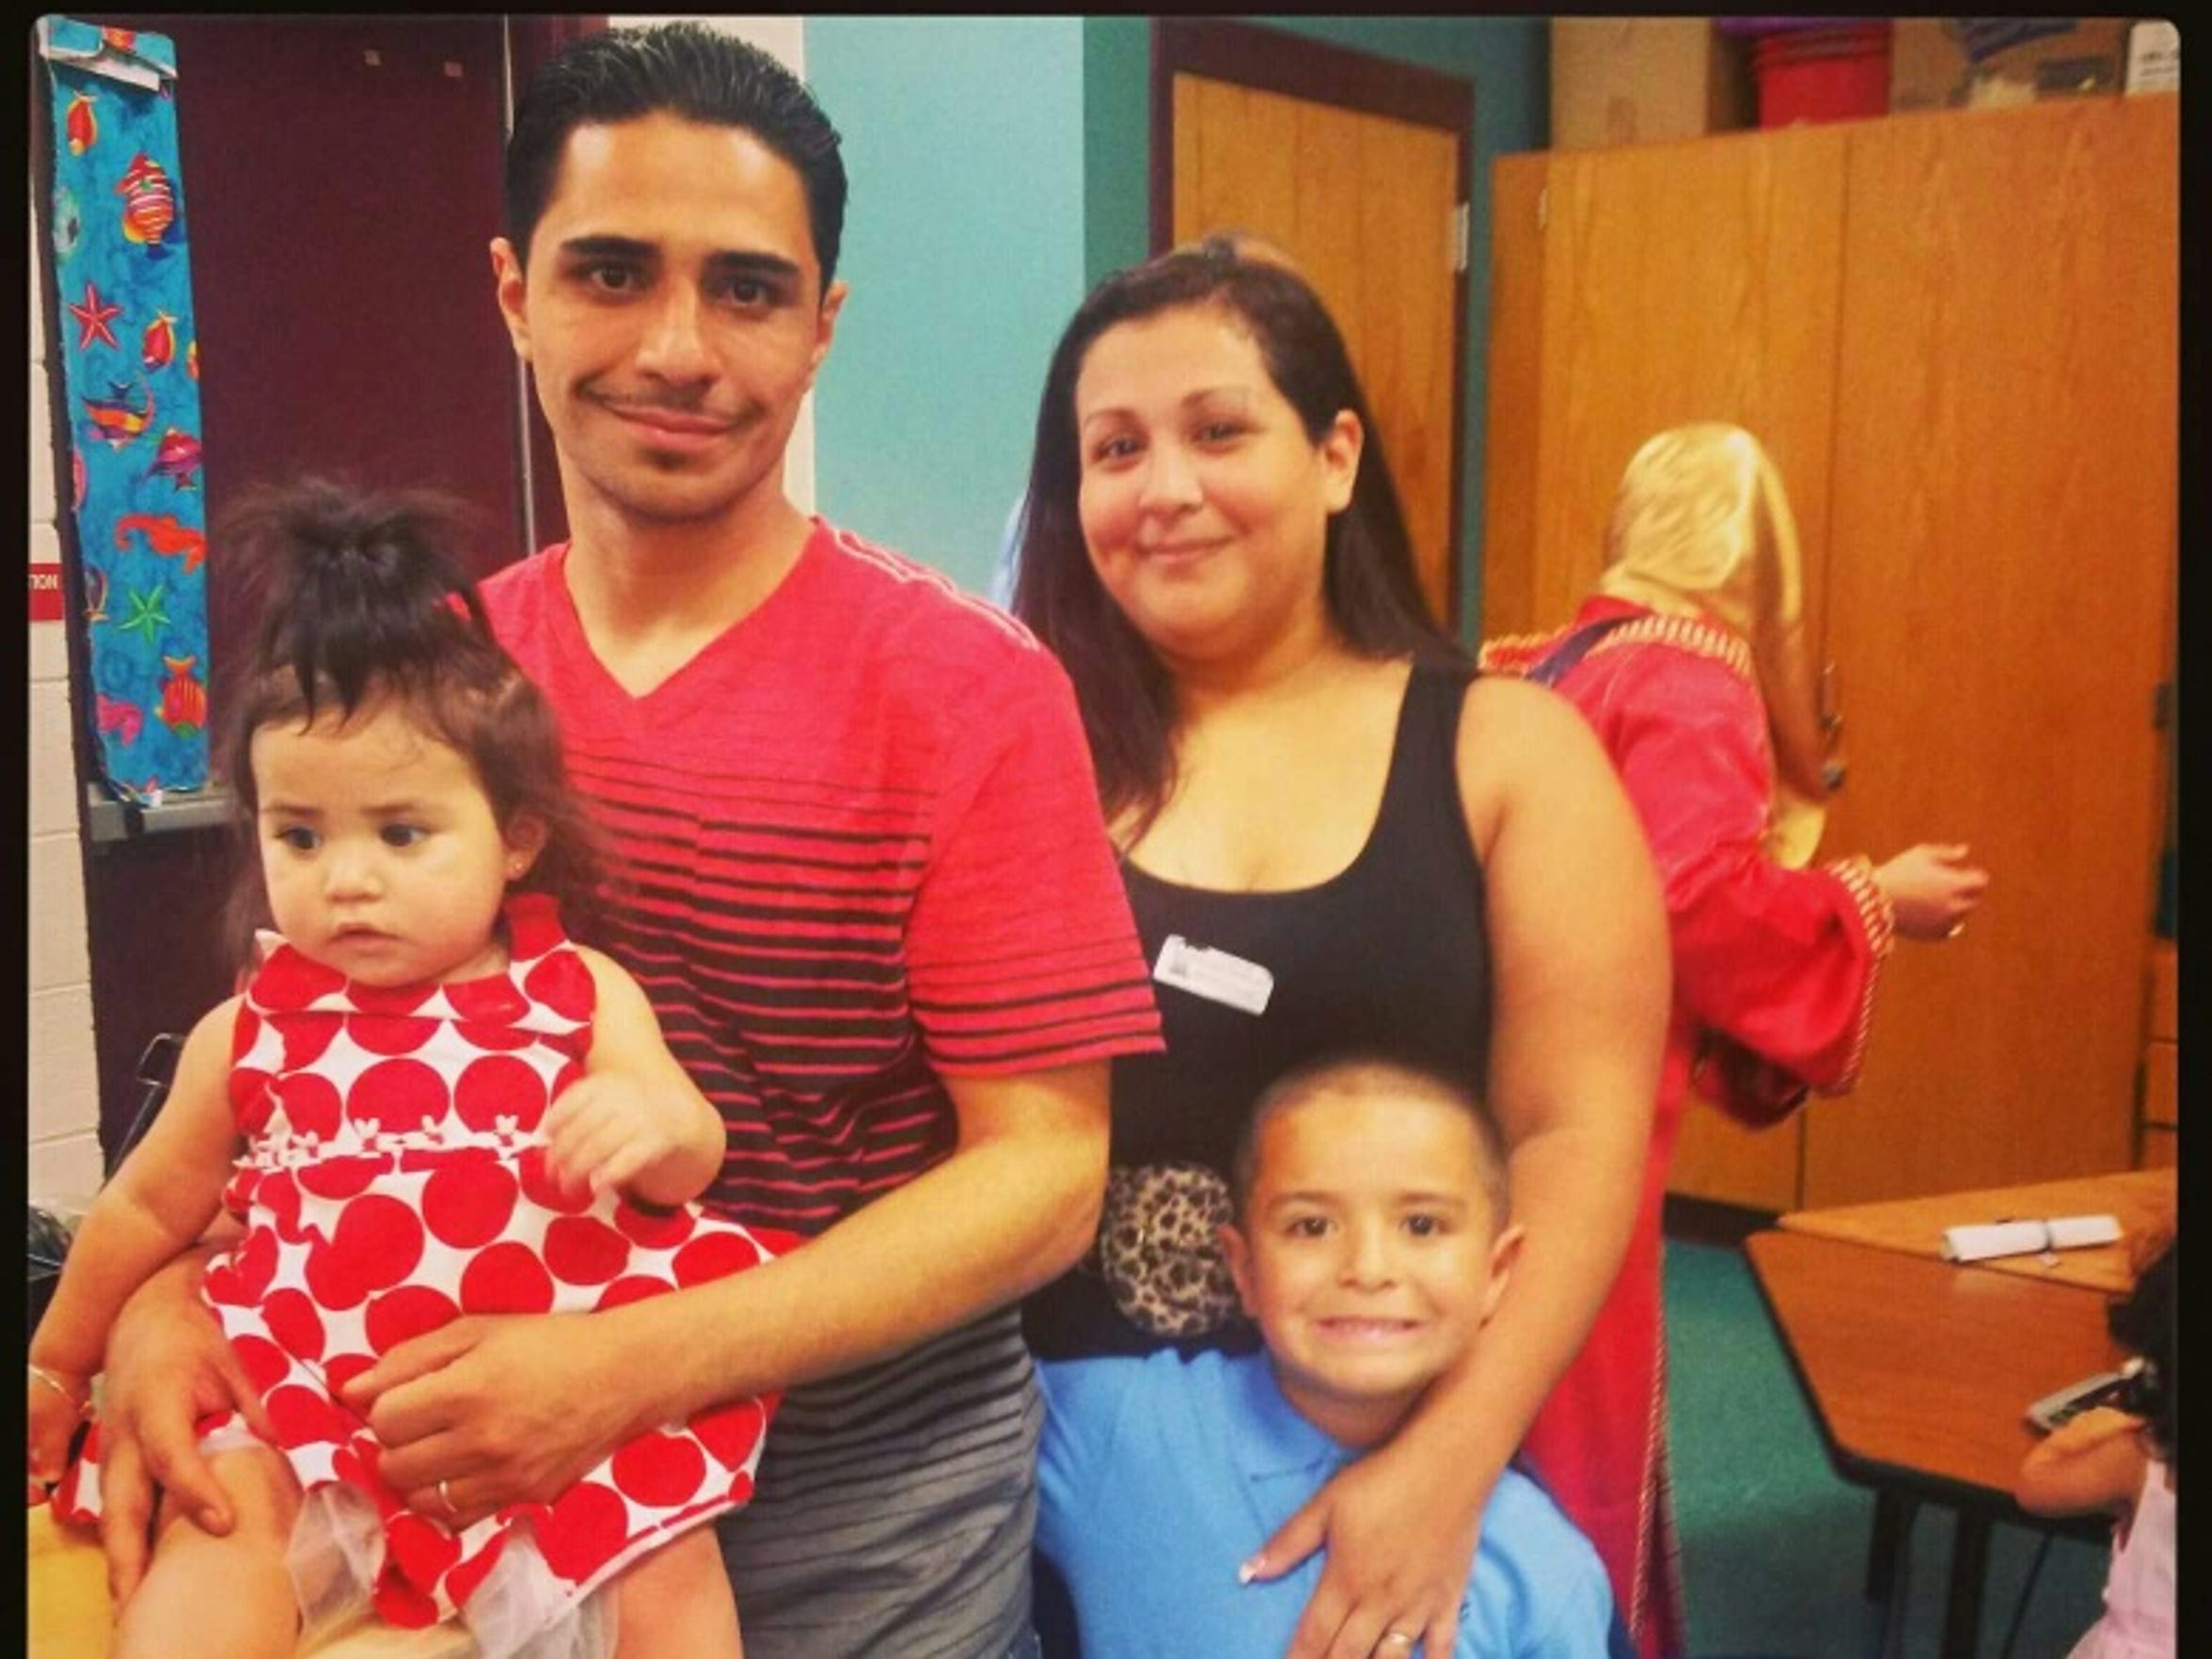 Norman Velez with wife Ingrid, daughter Skylar and